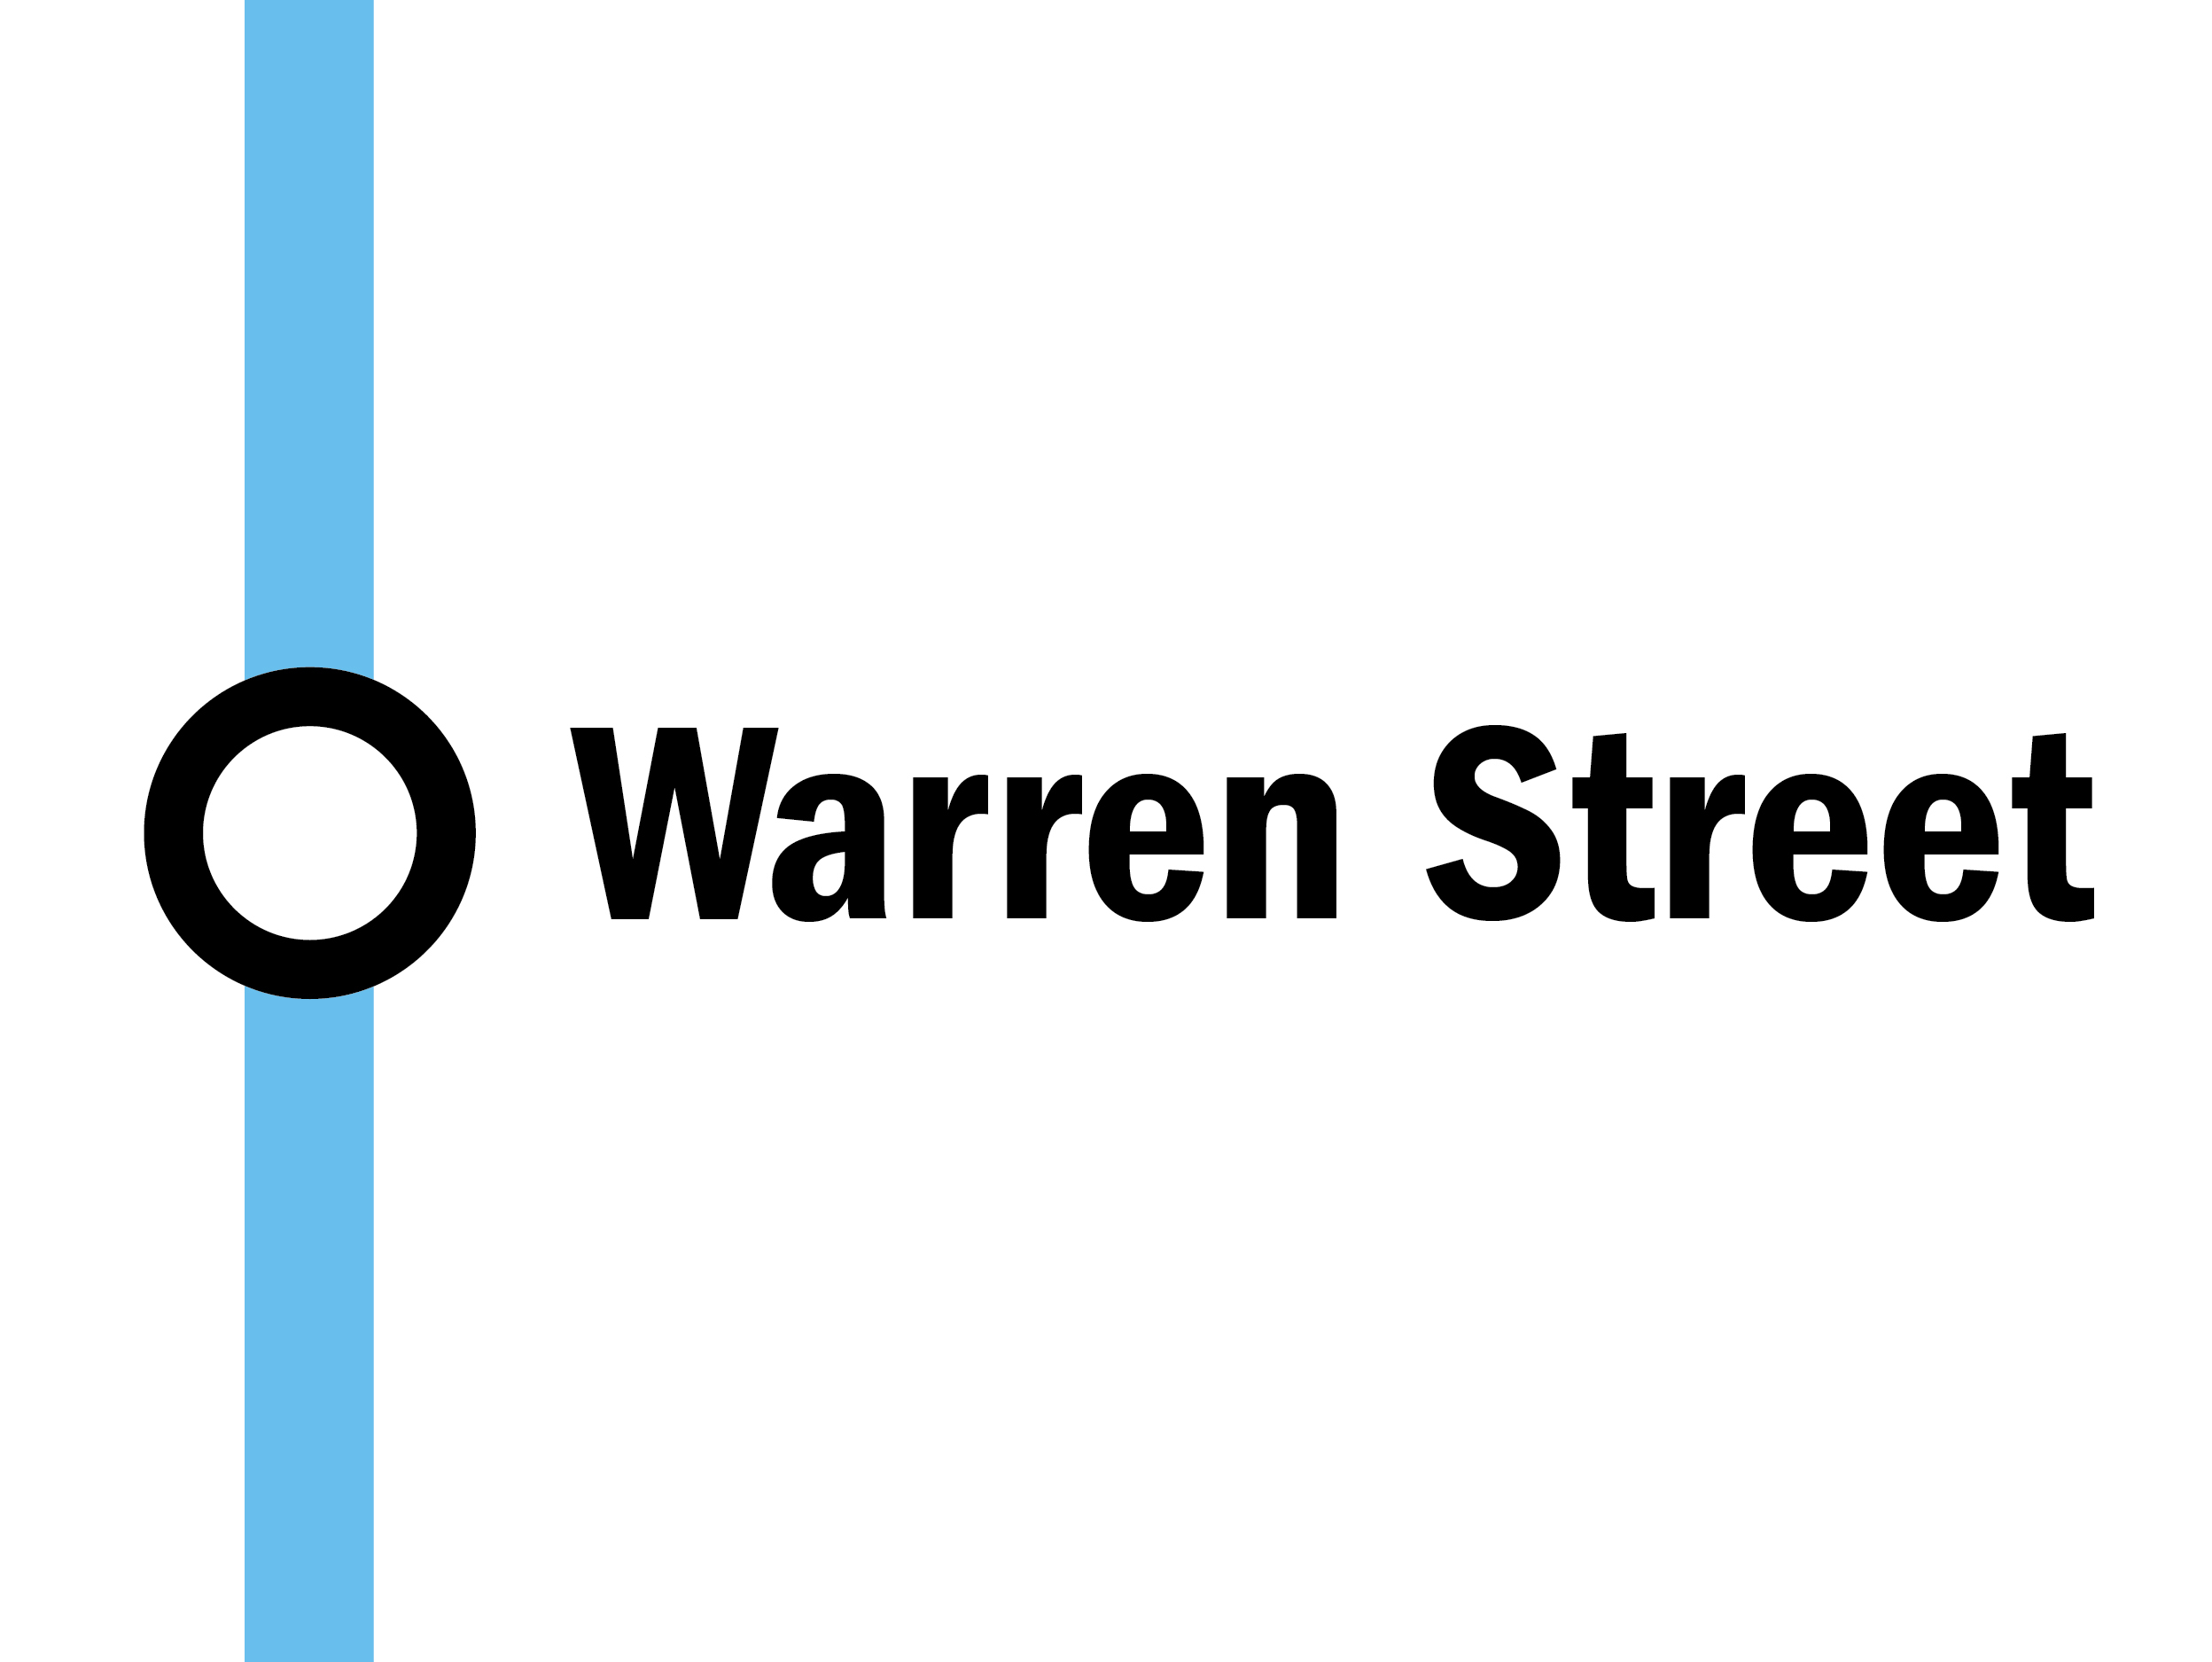 Night tube: Warren Street